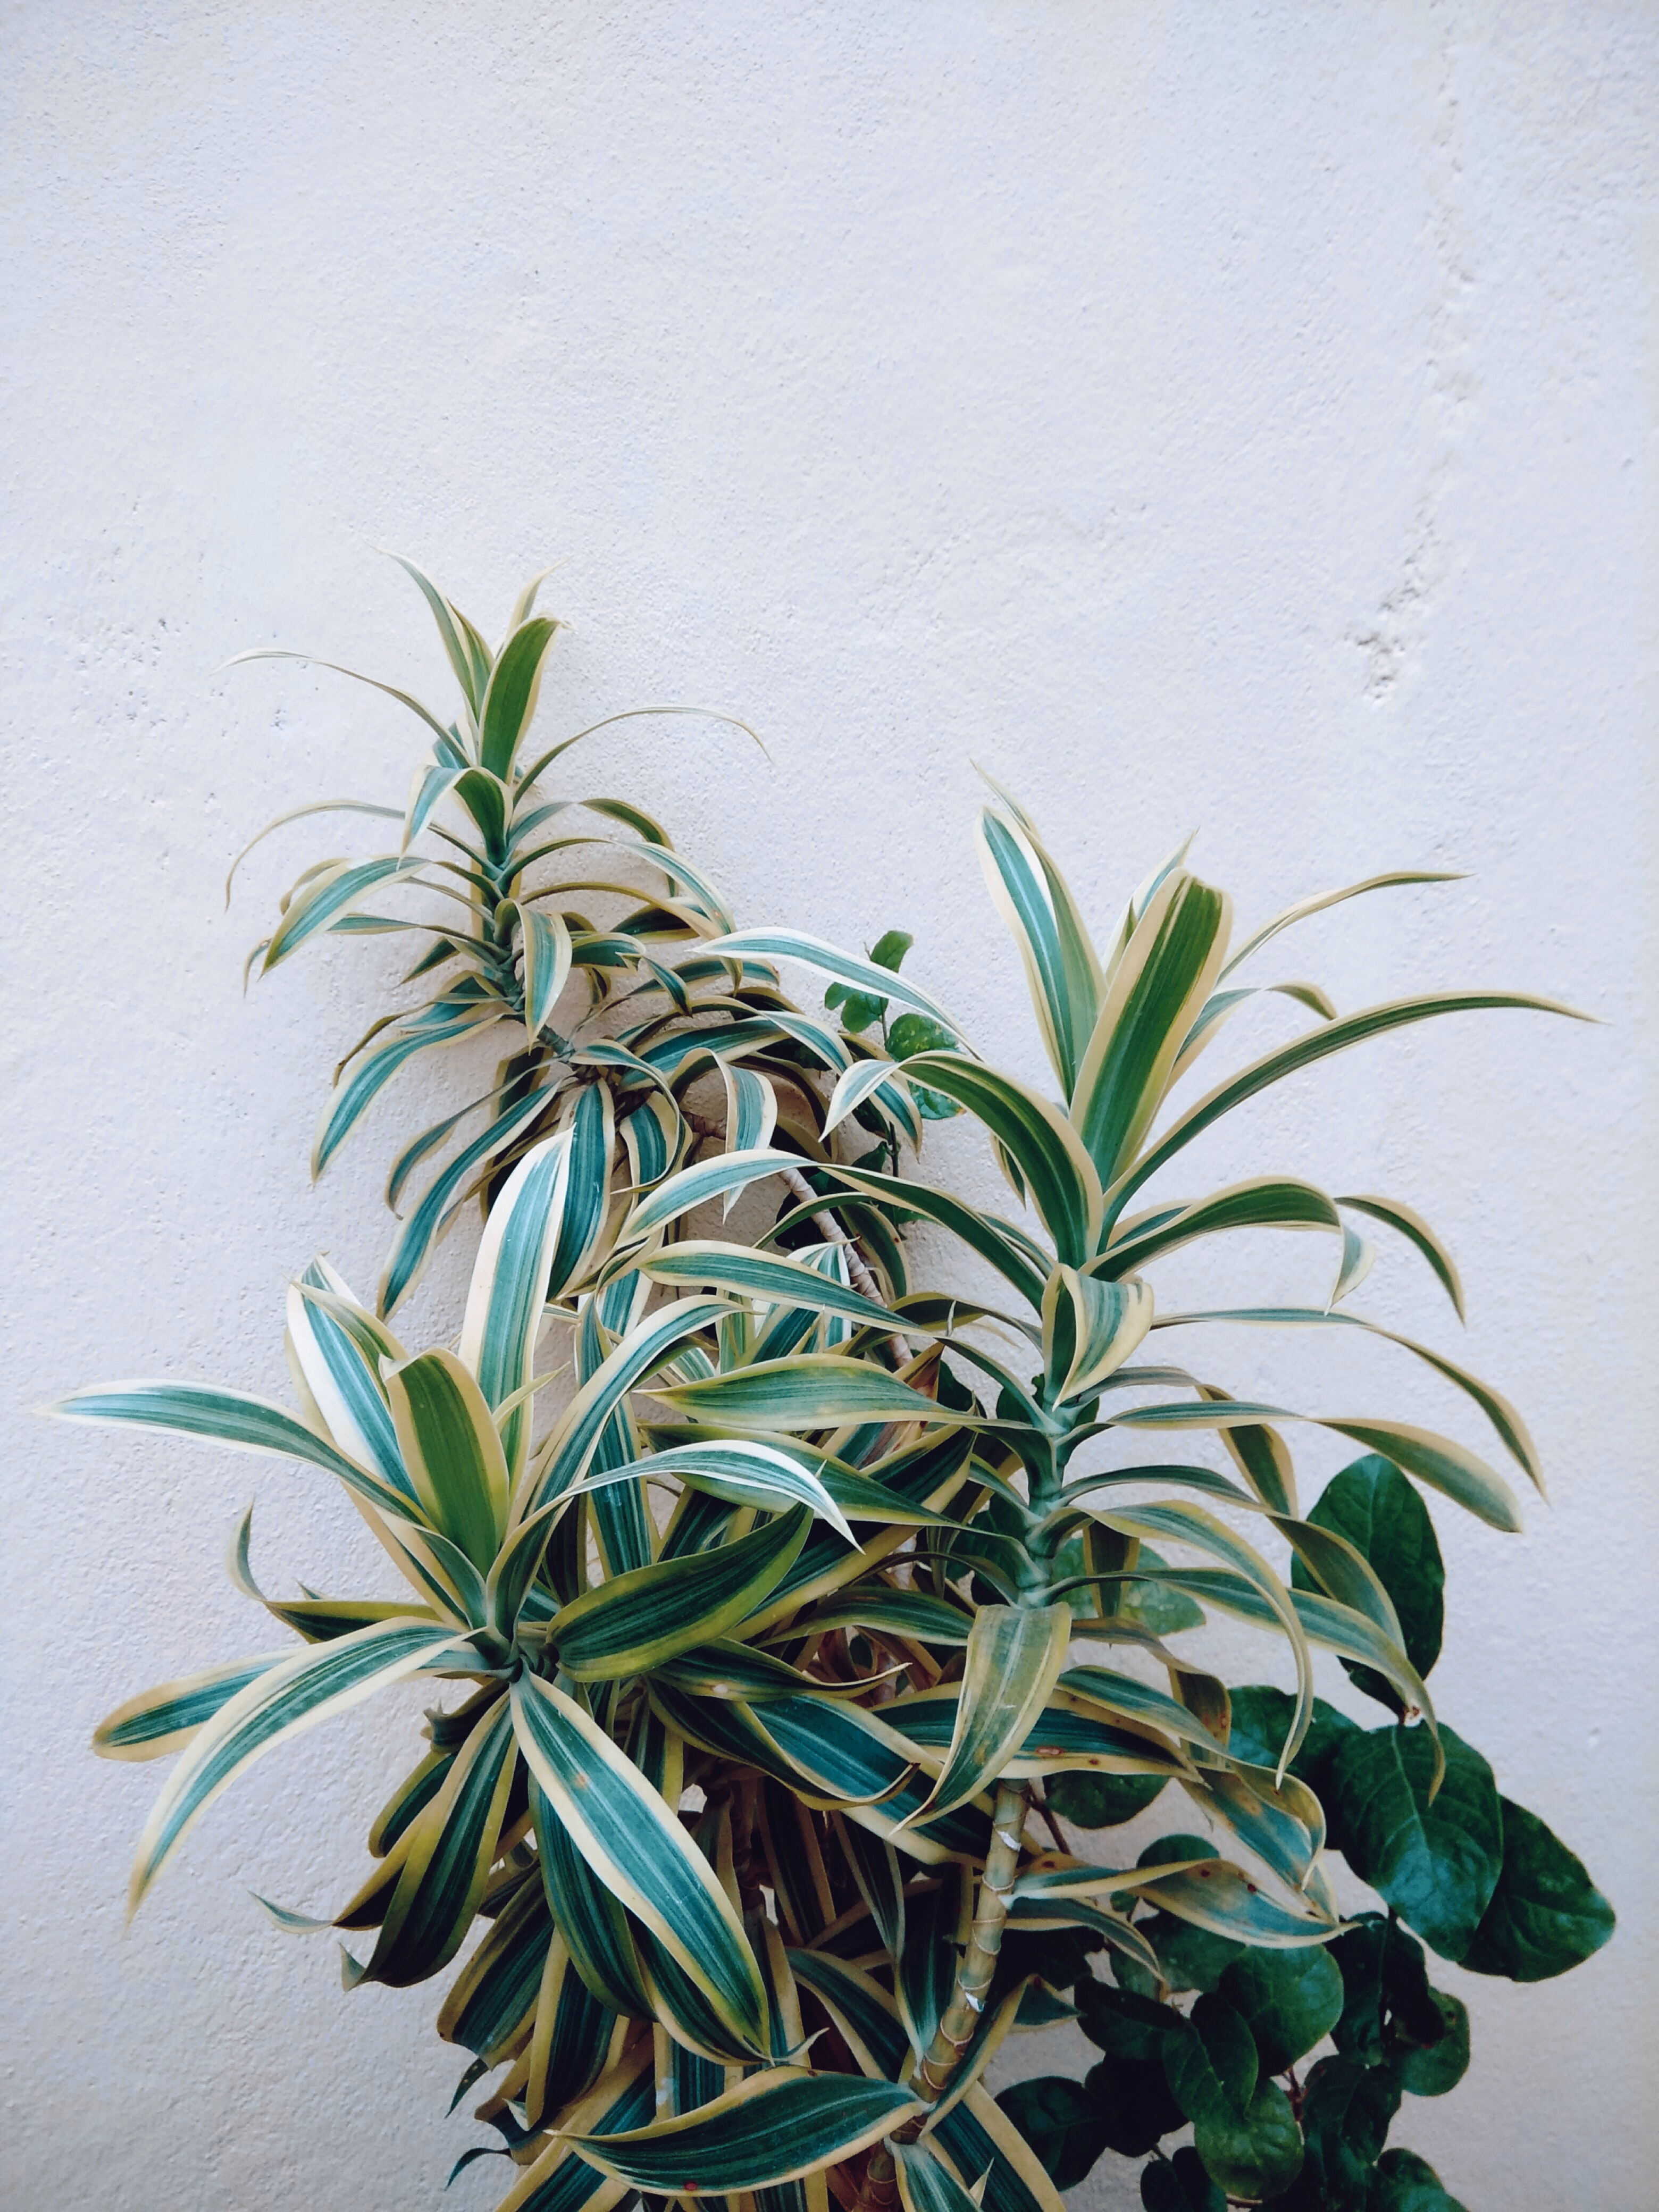 green leafed plant beside wall